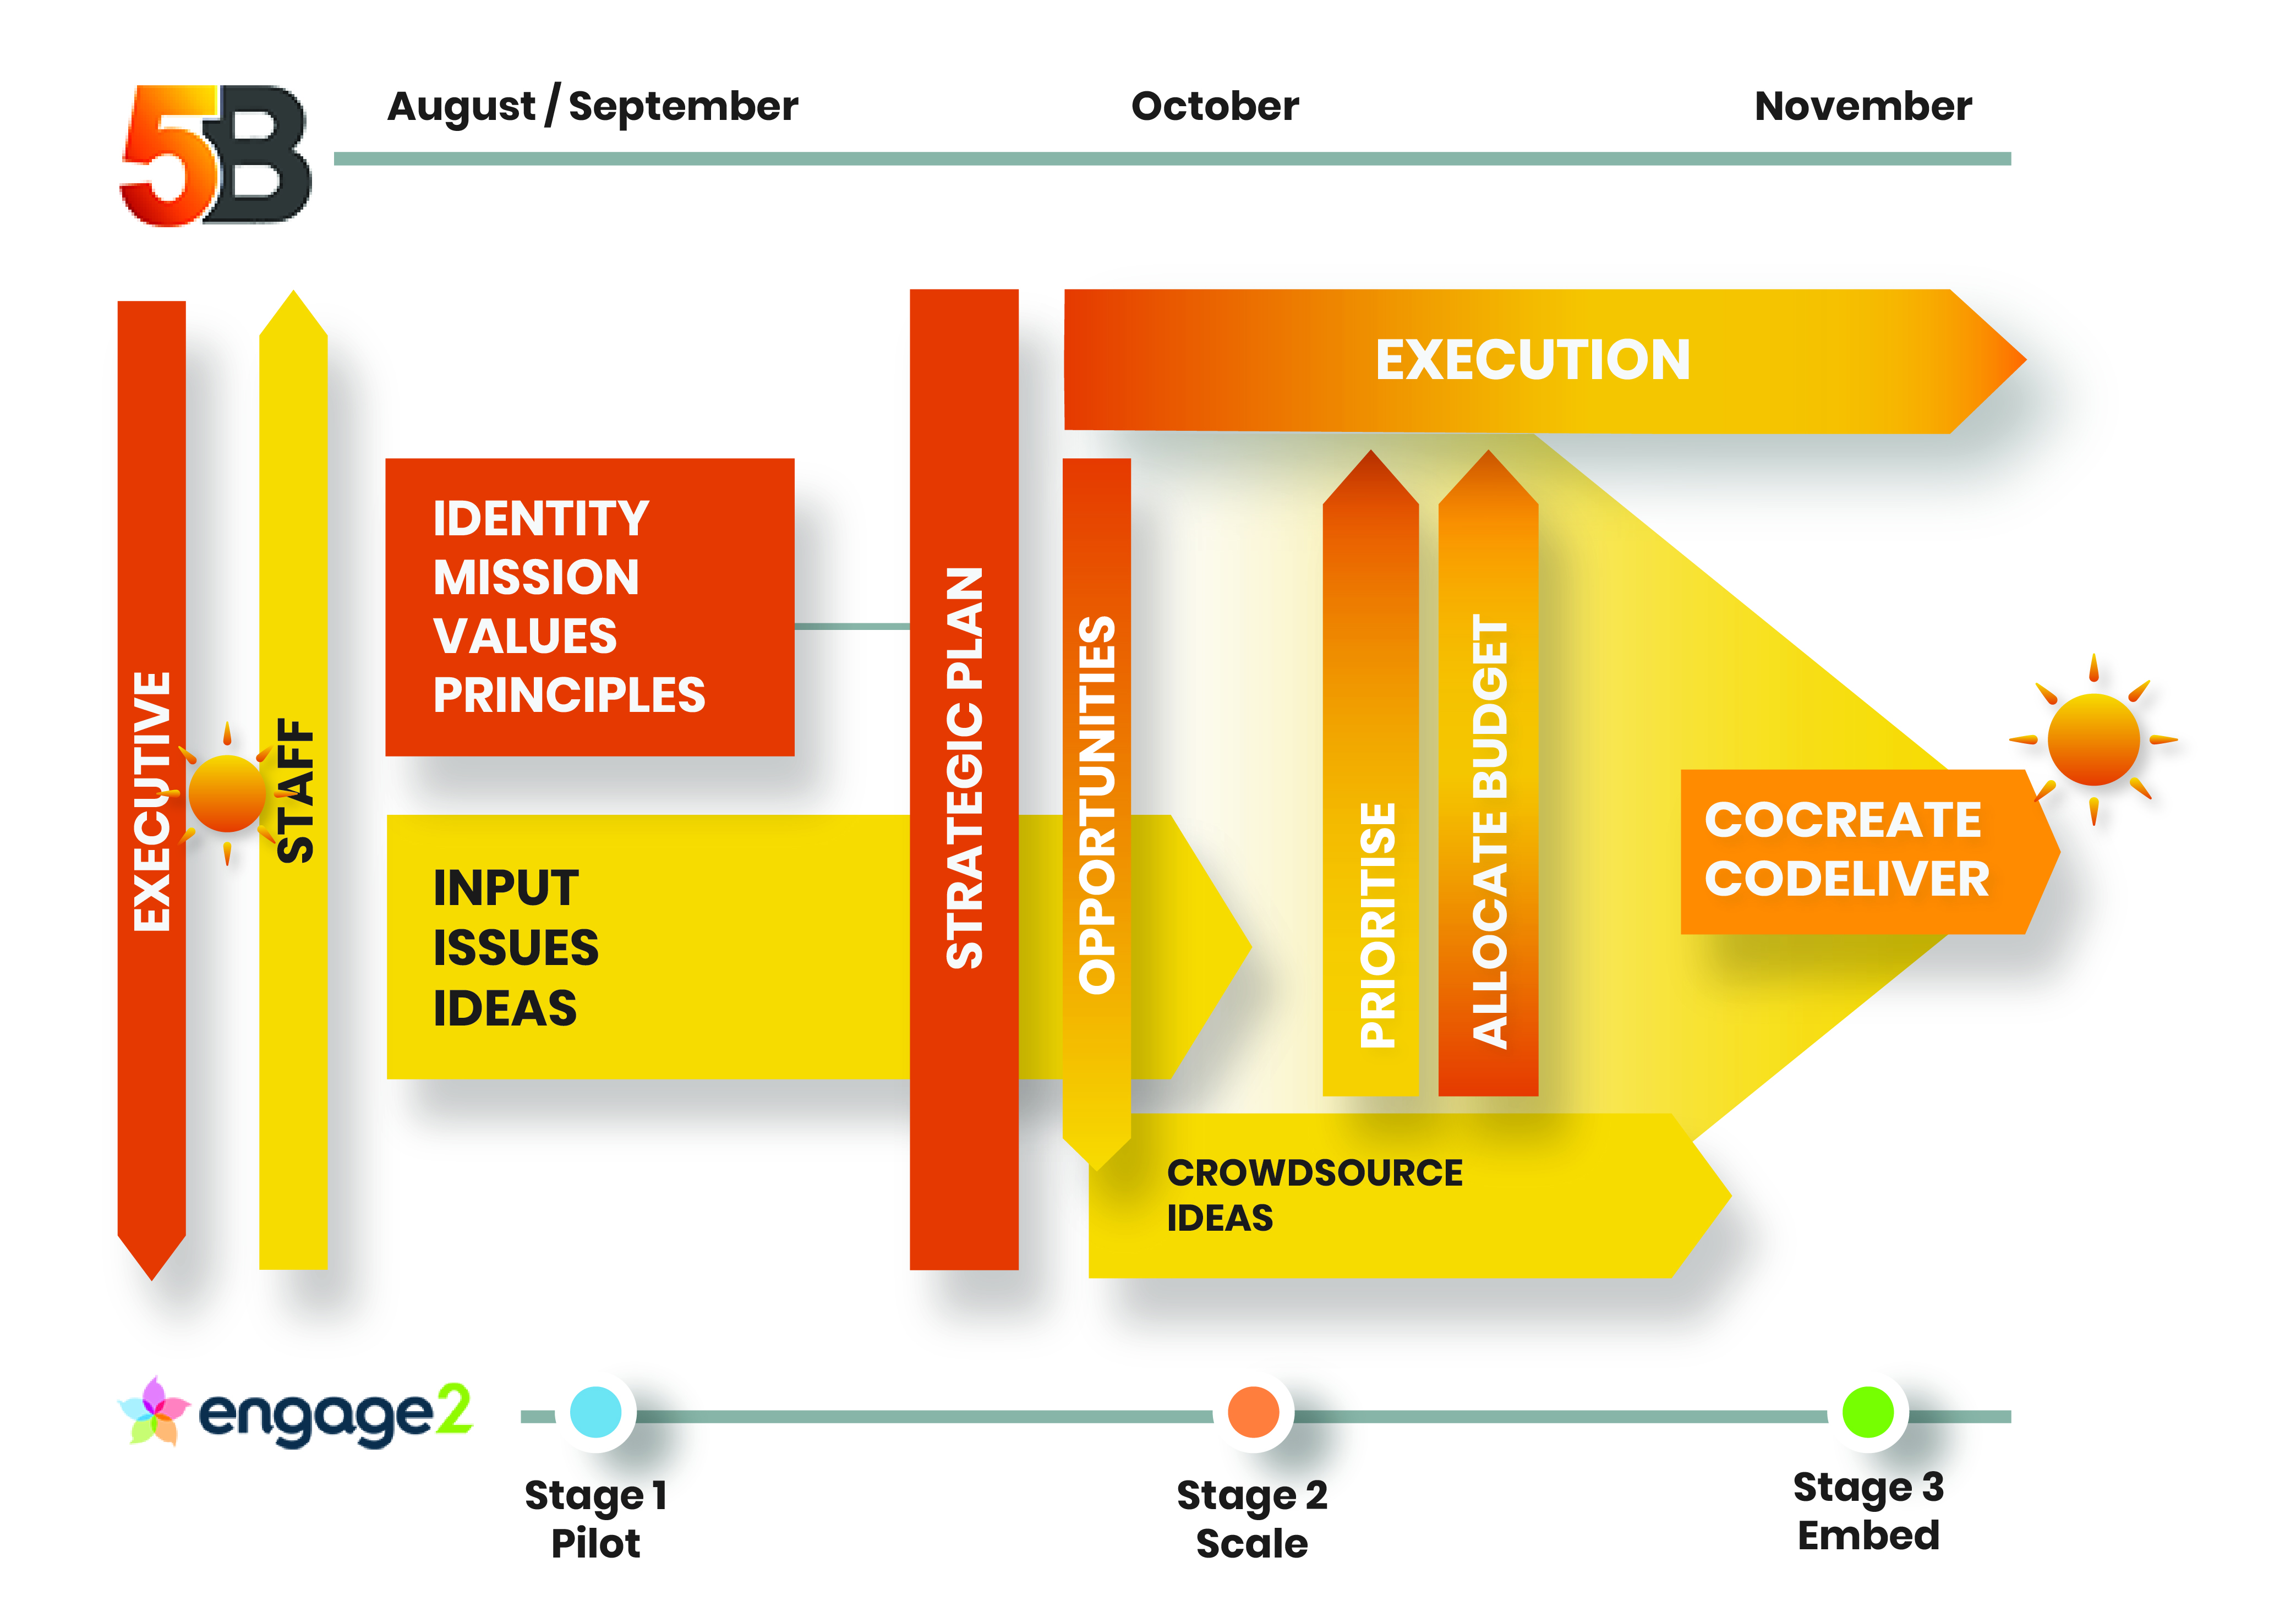 A diagram showing the process Engage2 developed for 5B's staff engagement in 2020